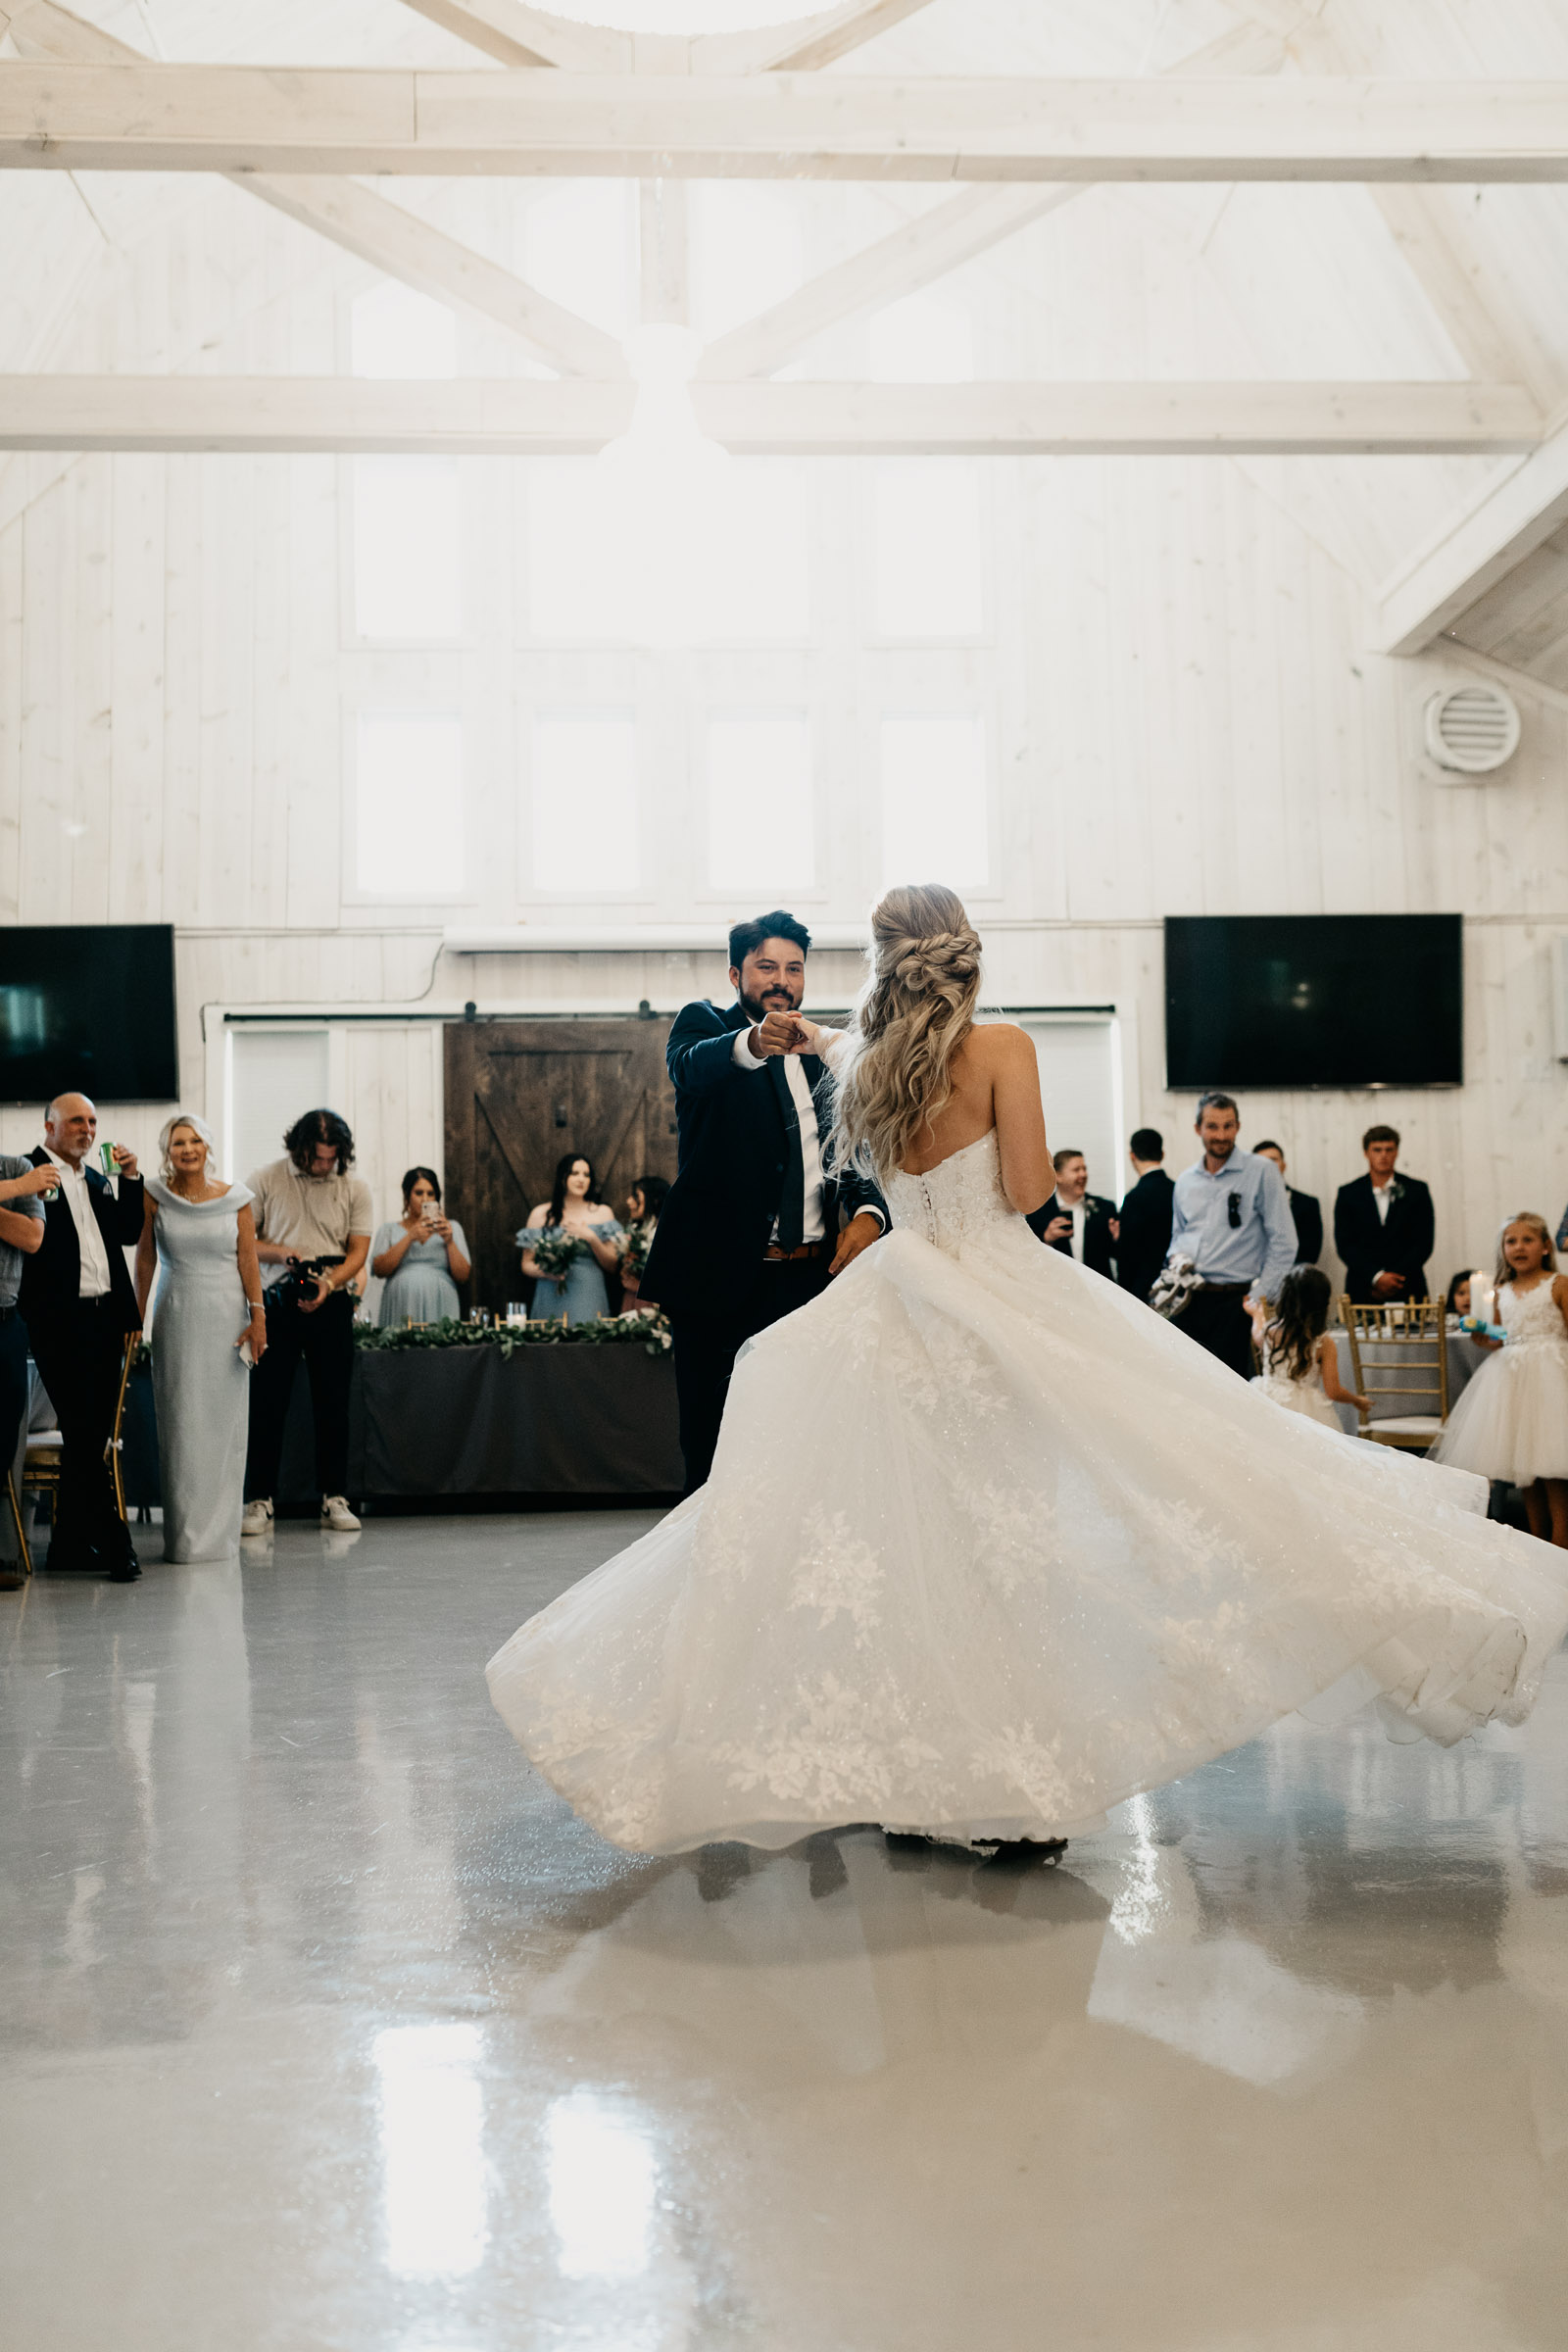 bride and groom sharing first dance and spinning around in white dress